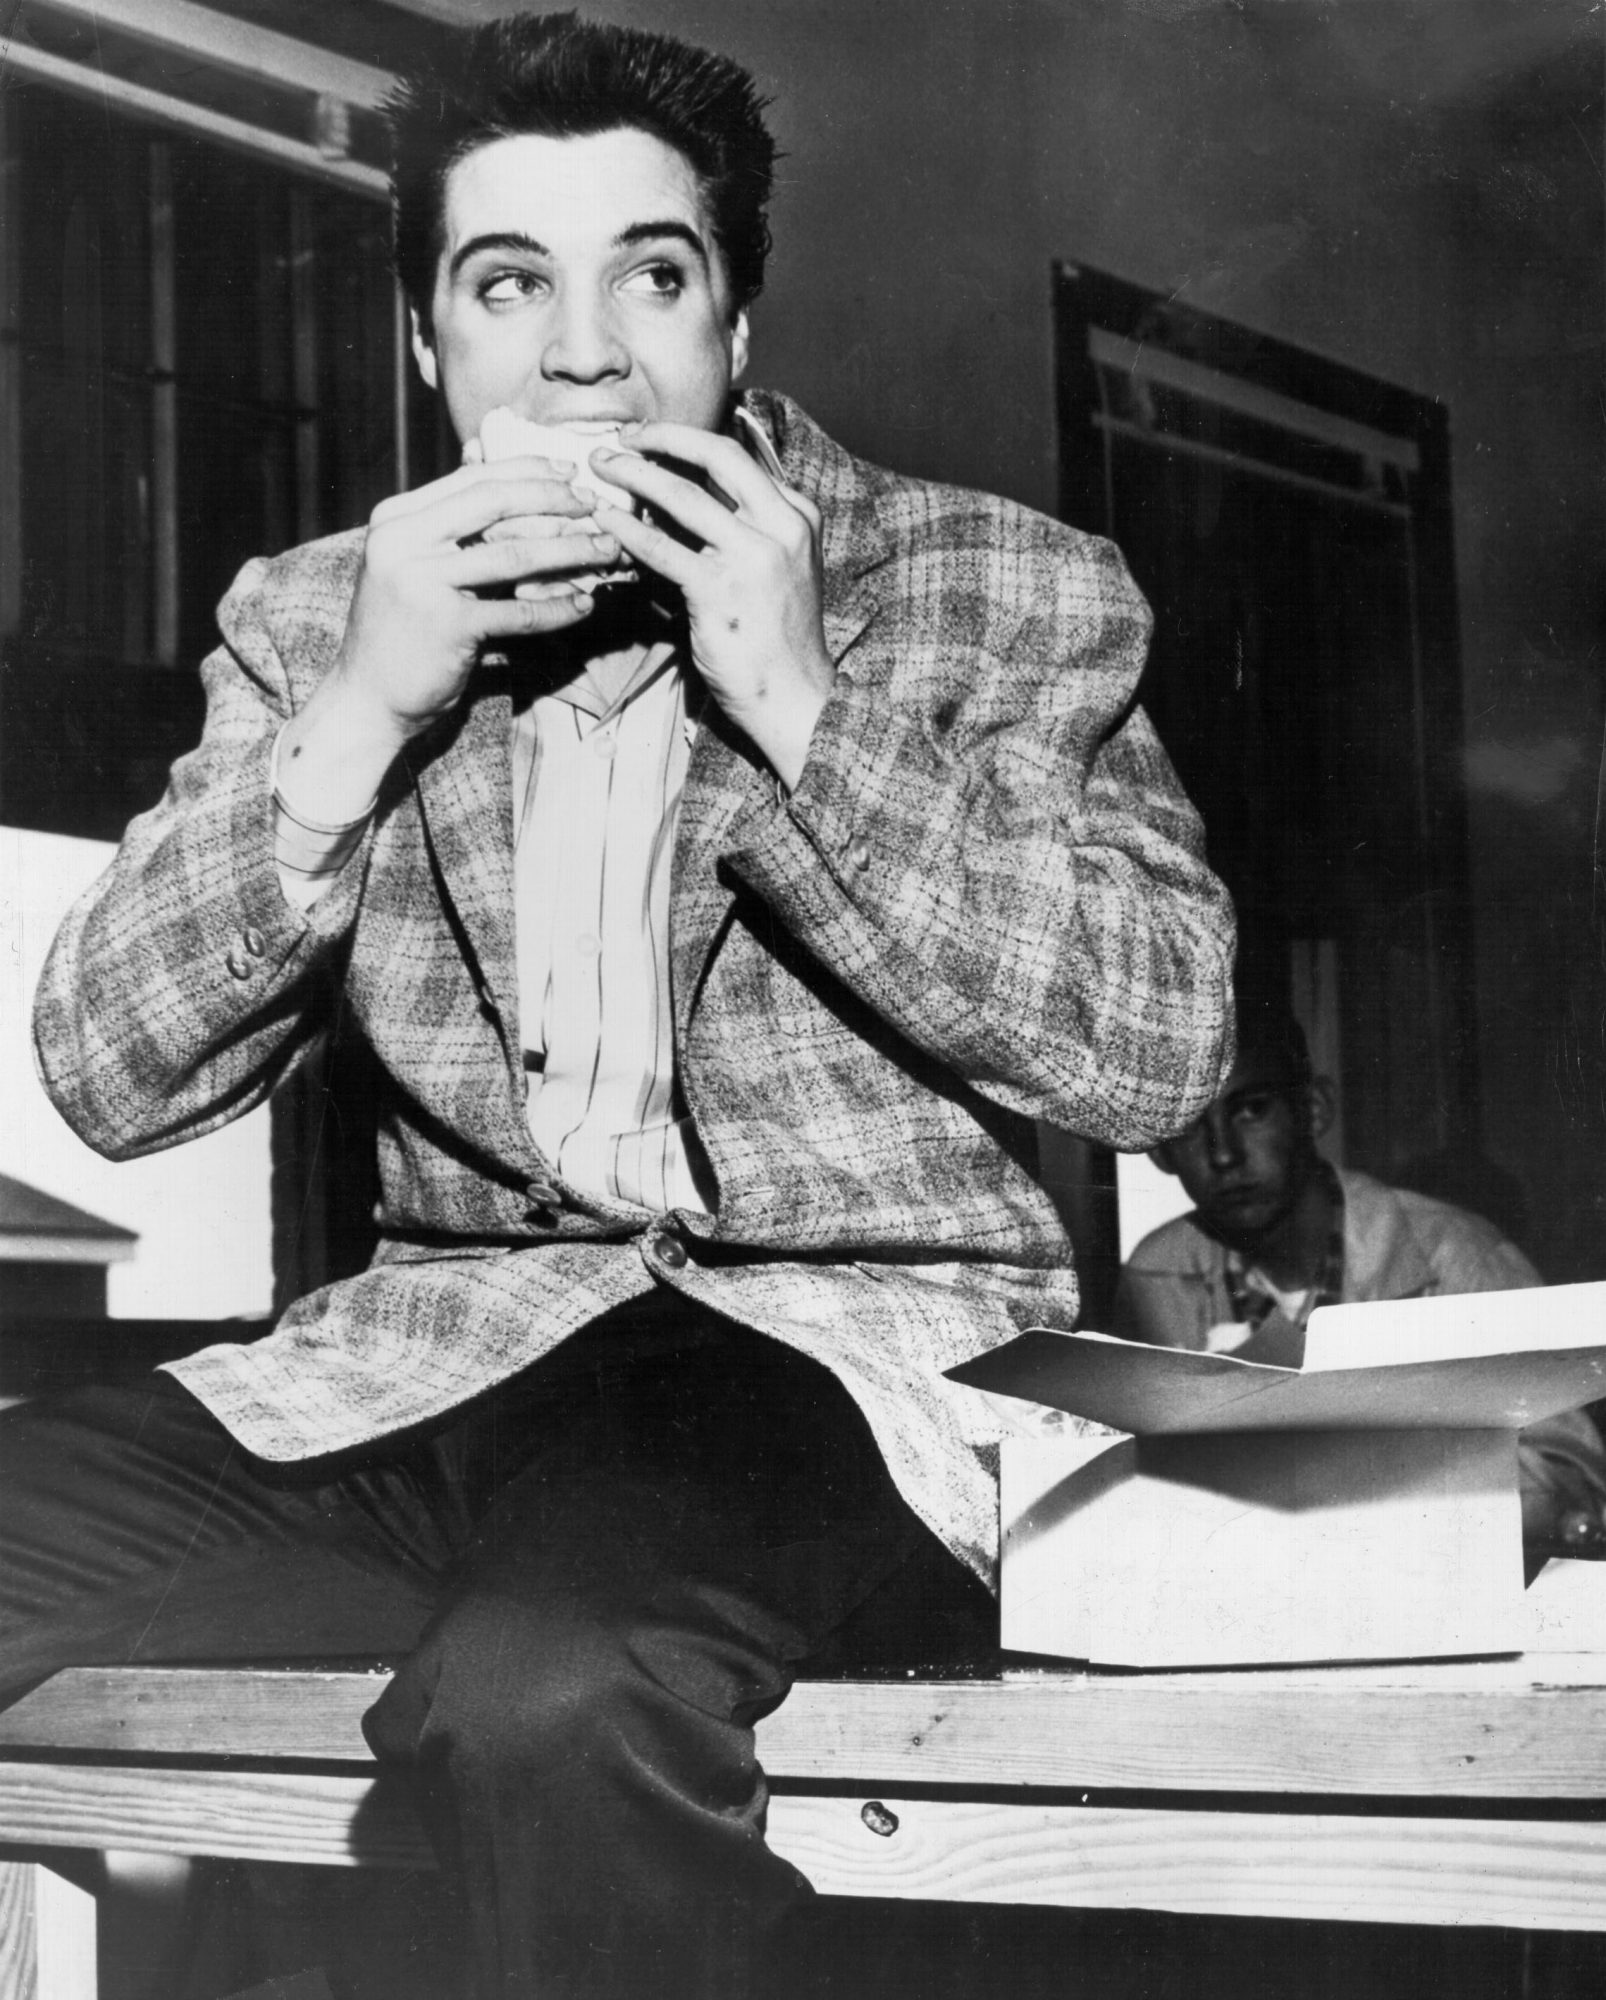 Elvis Presley Rsquo S Favorite Sandwich Featured Peanut Butter Banana And Bacon Southern Living